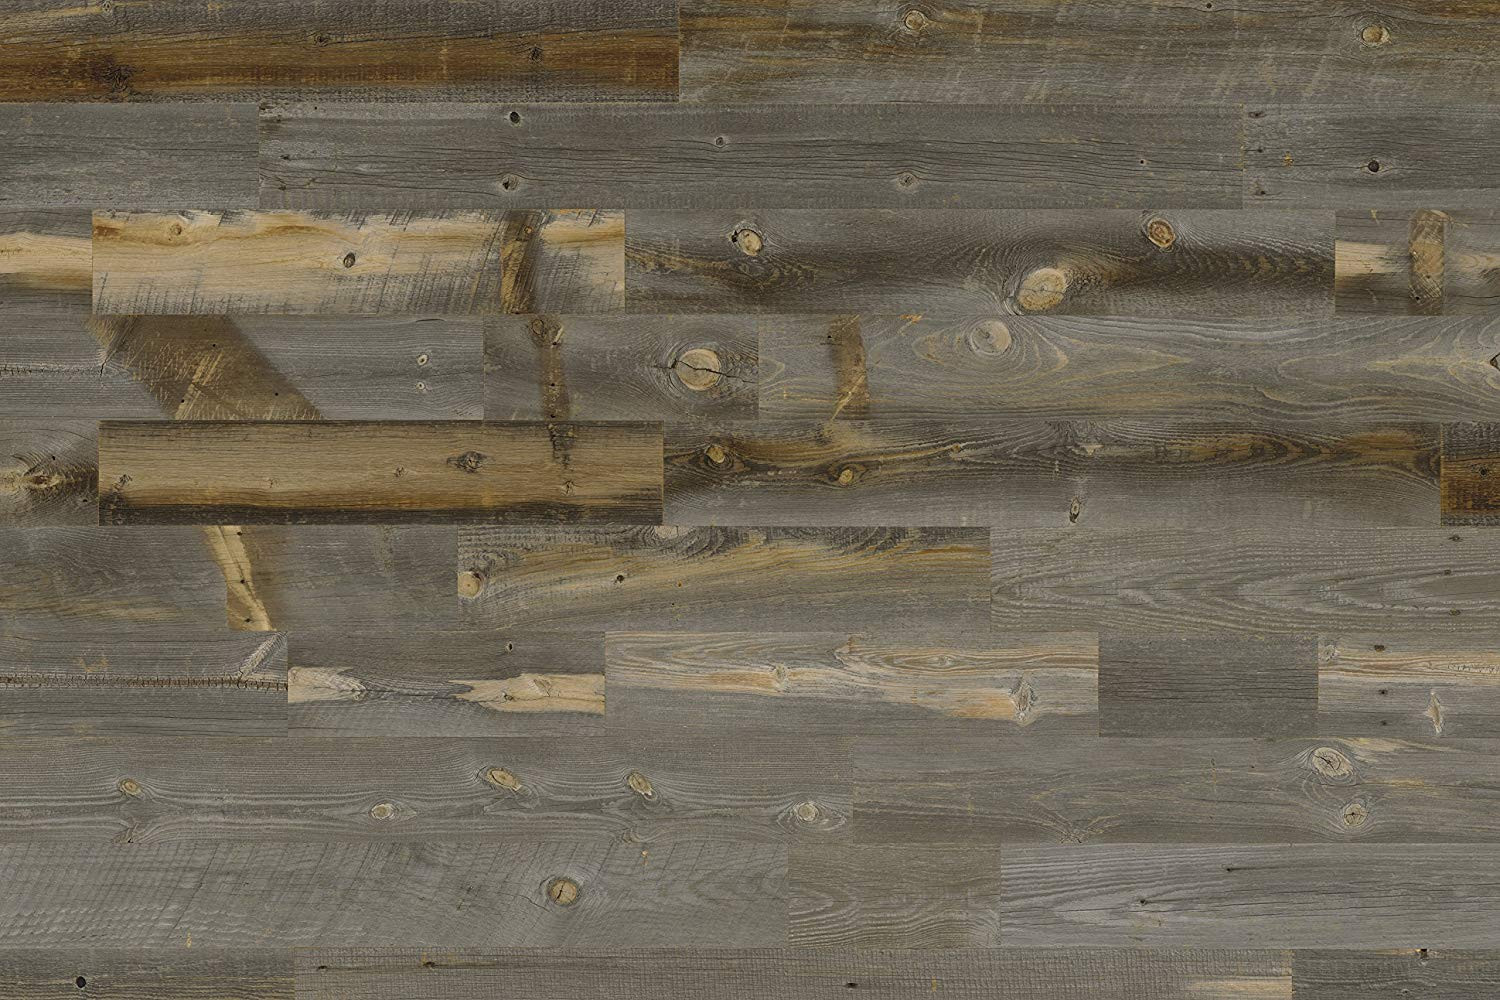 salvaged hardwood flooring for sale of amazon com stikwood reclaimed weathered wood silver gray brown 20 with regard to amazon com stikwood reclaimed weathered wood silver gray brown 20 square feet easy peel and stick application baby